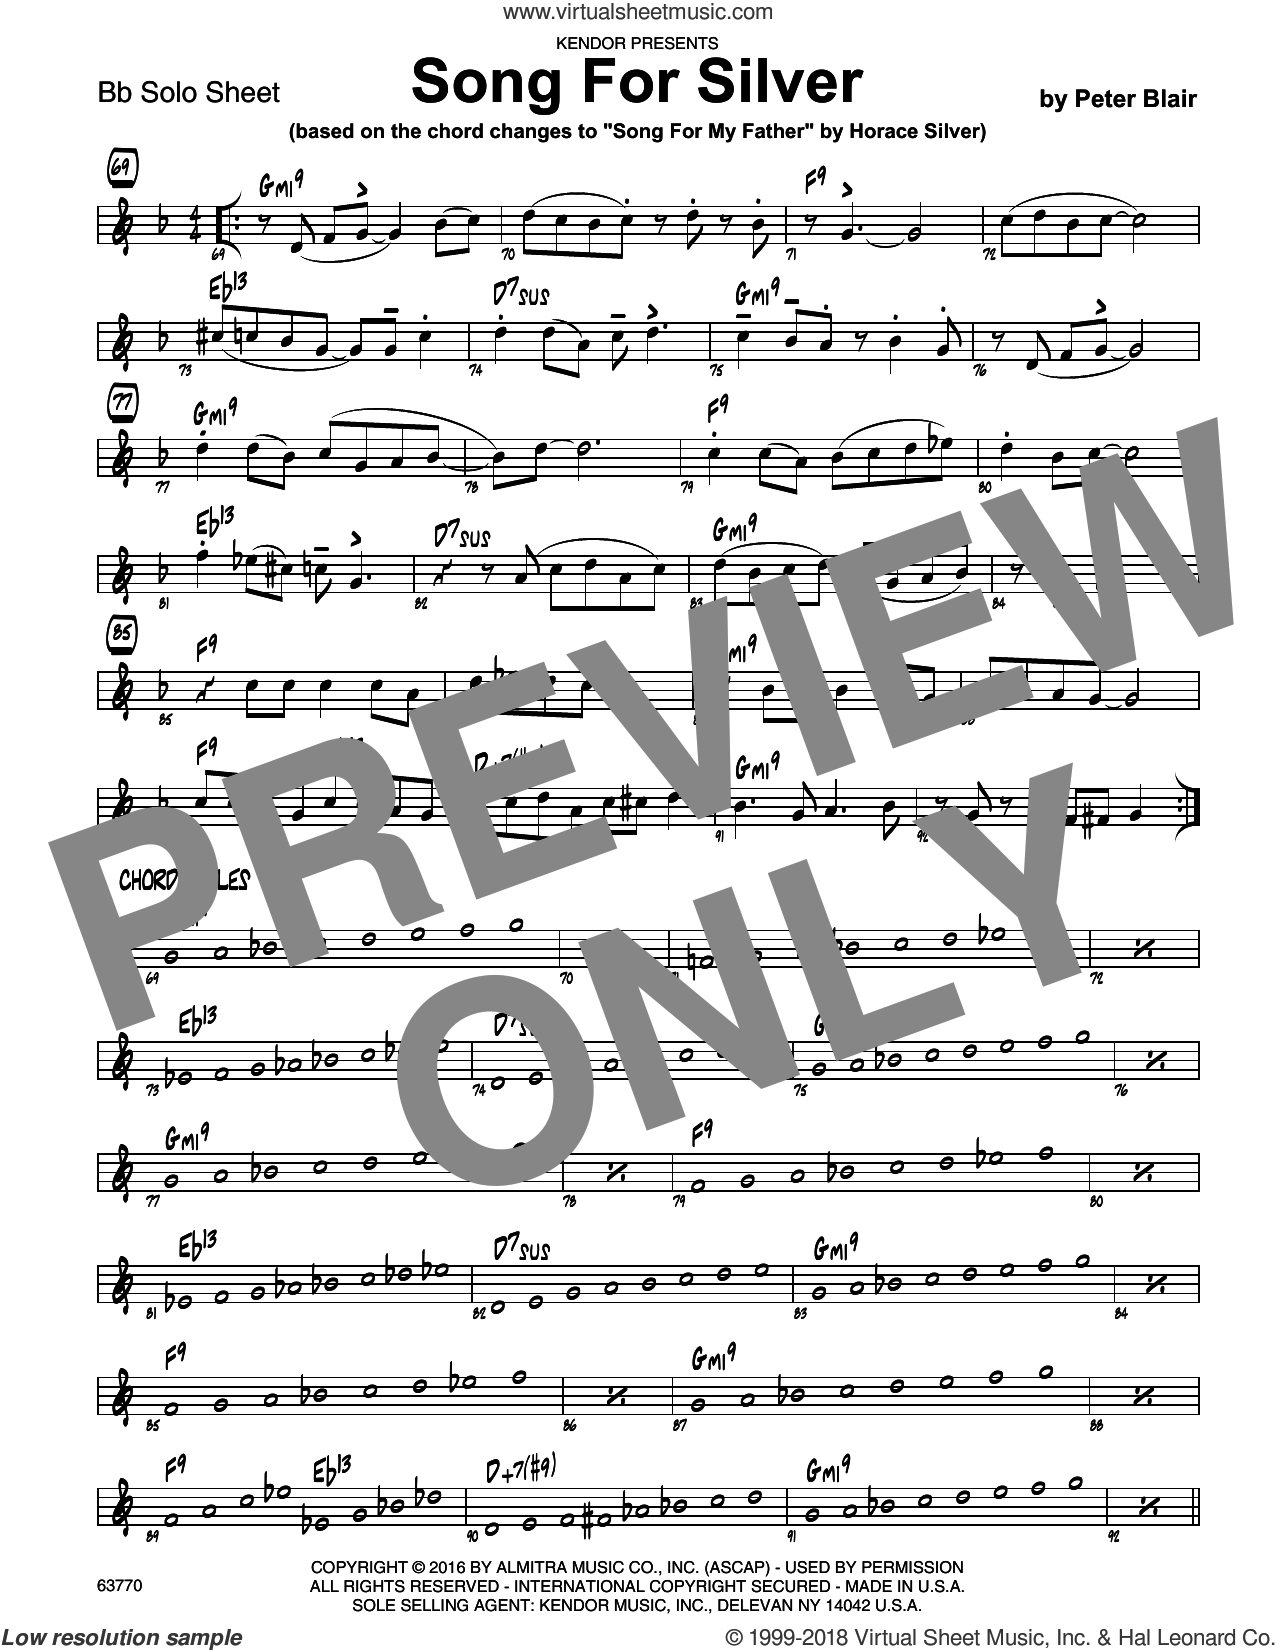 Song For Silver (based on Song For My Father by Horace Silver) sheet music for jazz band (Bb solo sheet) by Peter Blair, intermediate jazz band (Bb sheet)